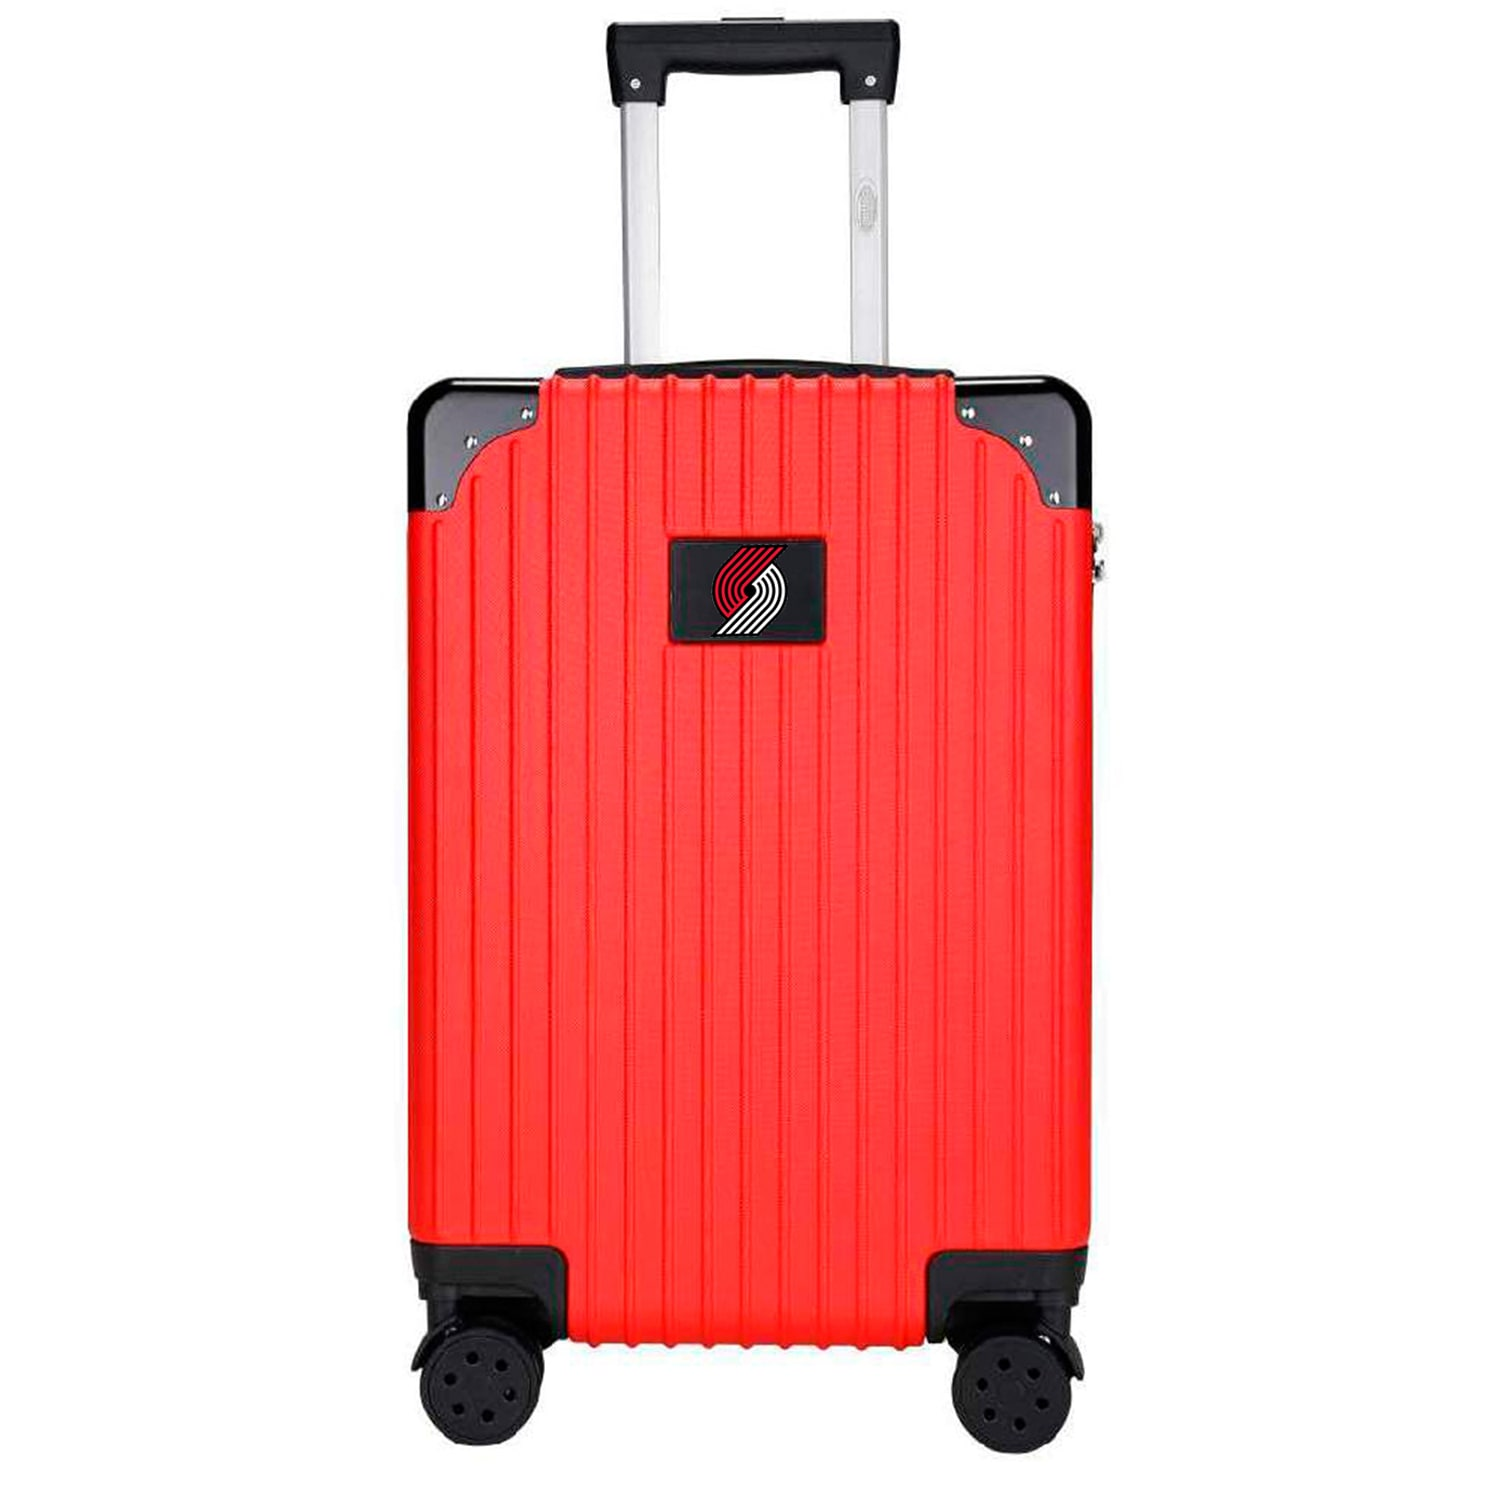 Portland Trail Blazers Premium 21'' Carry-On Hardcase Luggage - Red